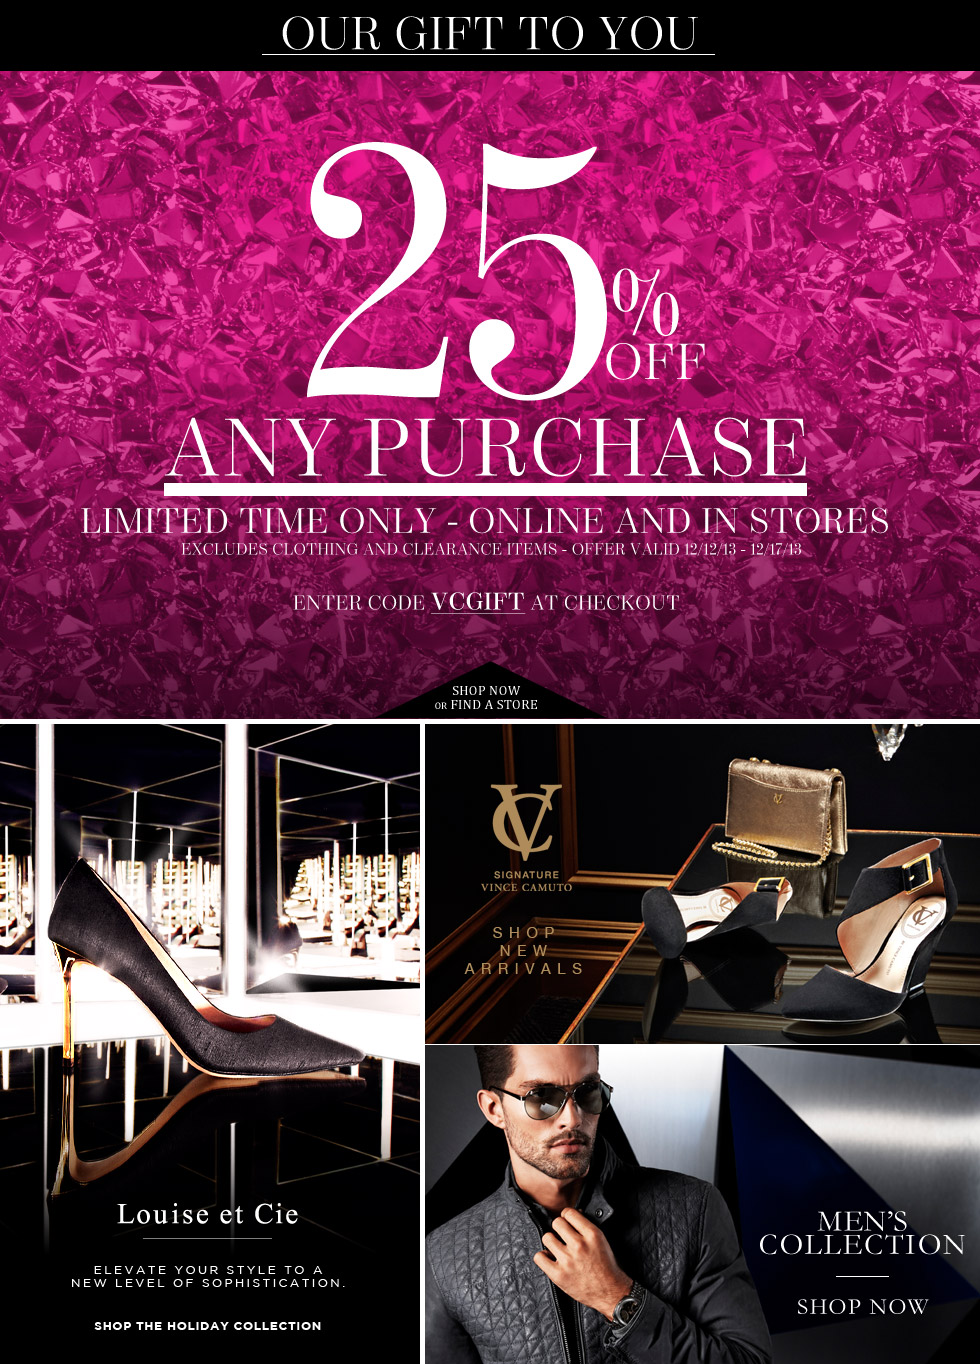 Designer  Shoes, Designer Handbags, Clothing & Perfume -  Vince Camuto